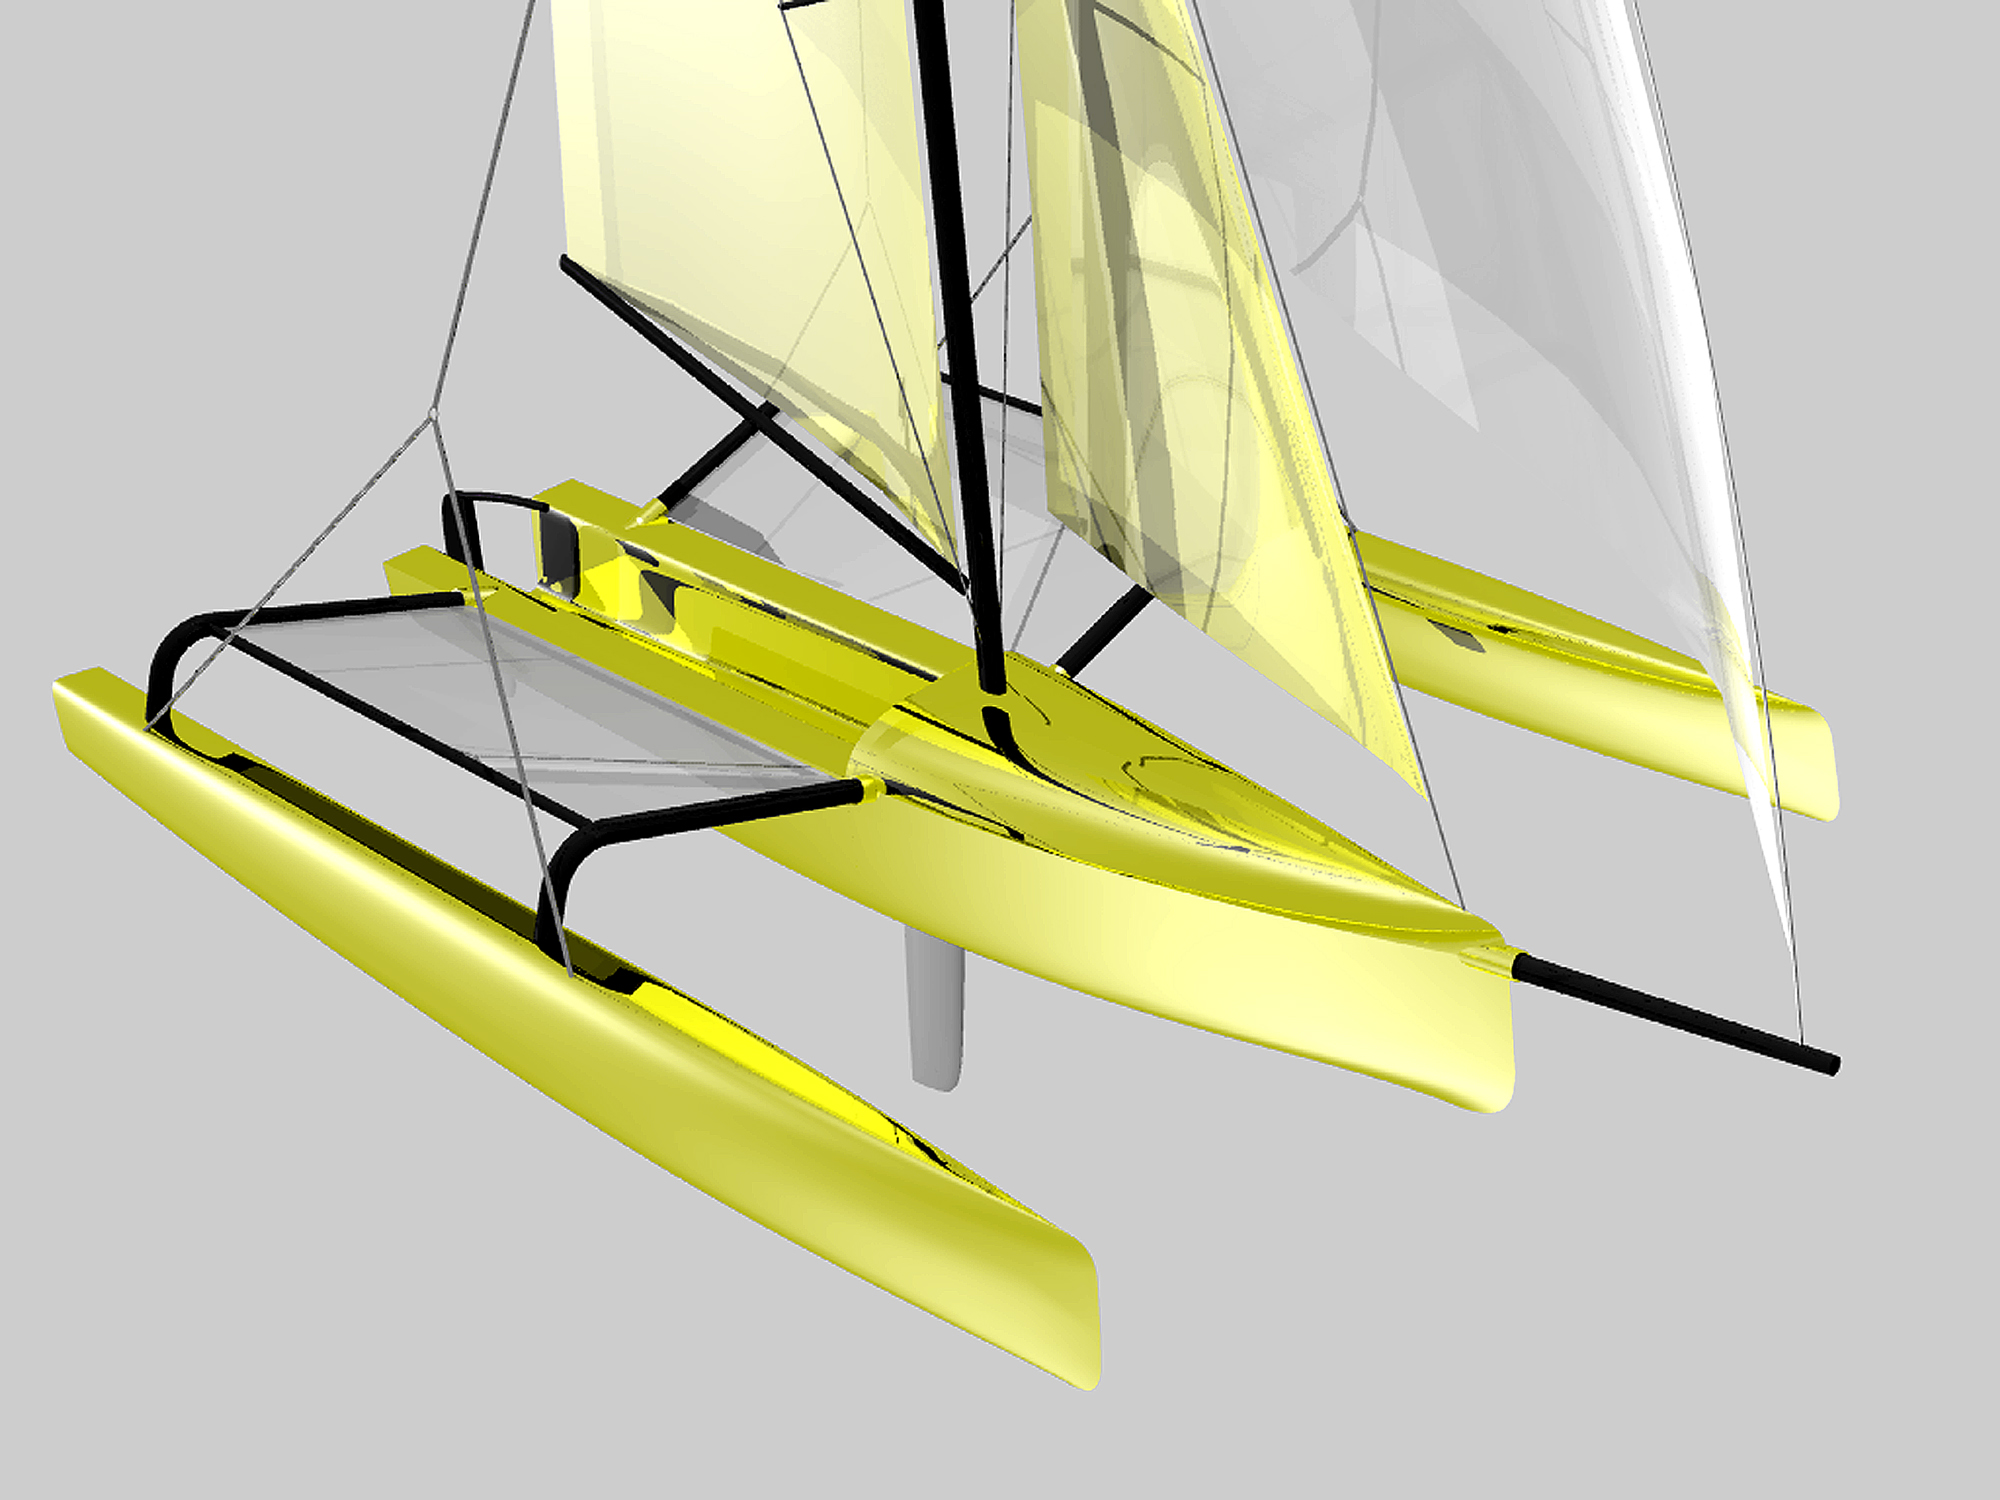 Trimaran Power Boat Plans - impremedia.net